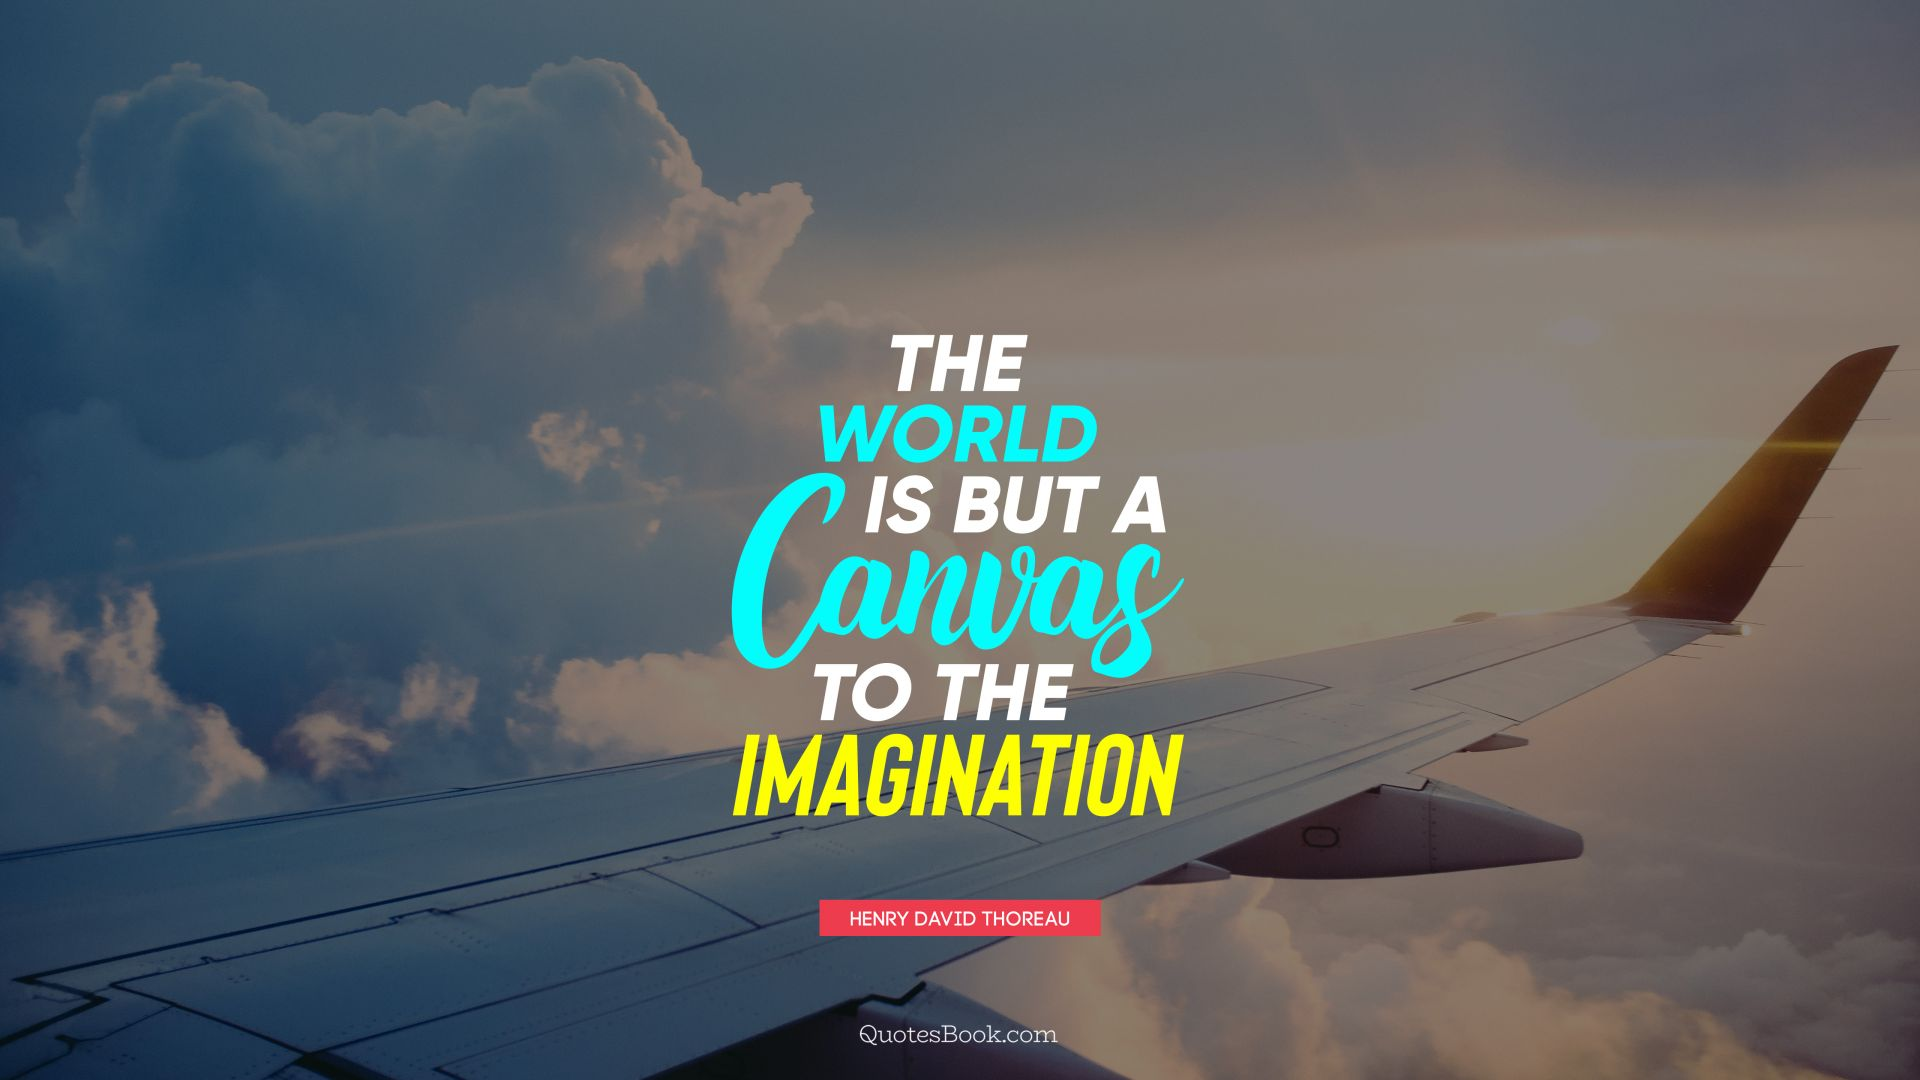 The world is but a canvas to the imagination. - Quote by Henry David Thoreau